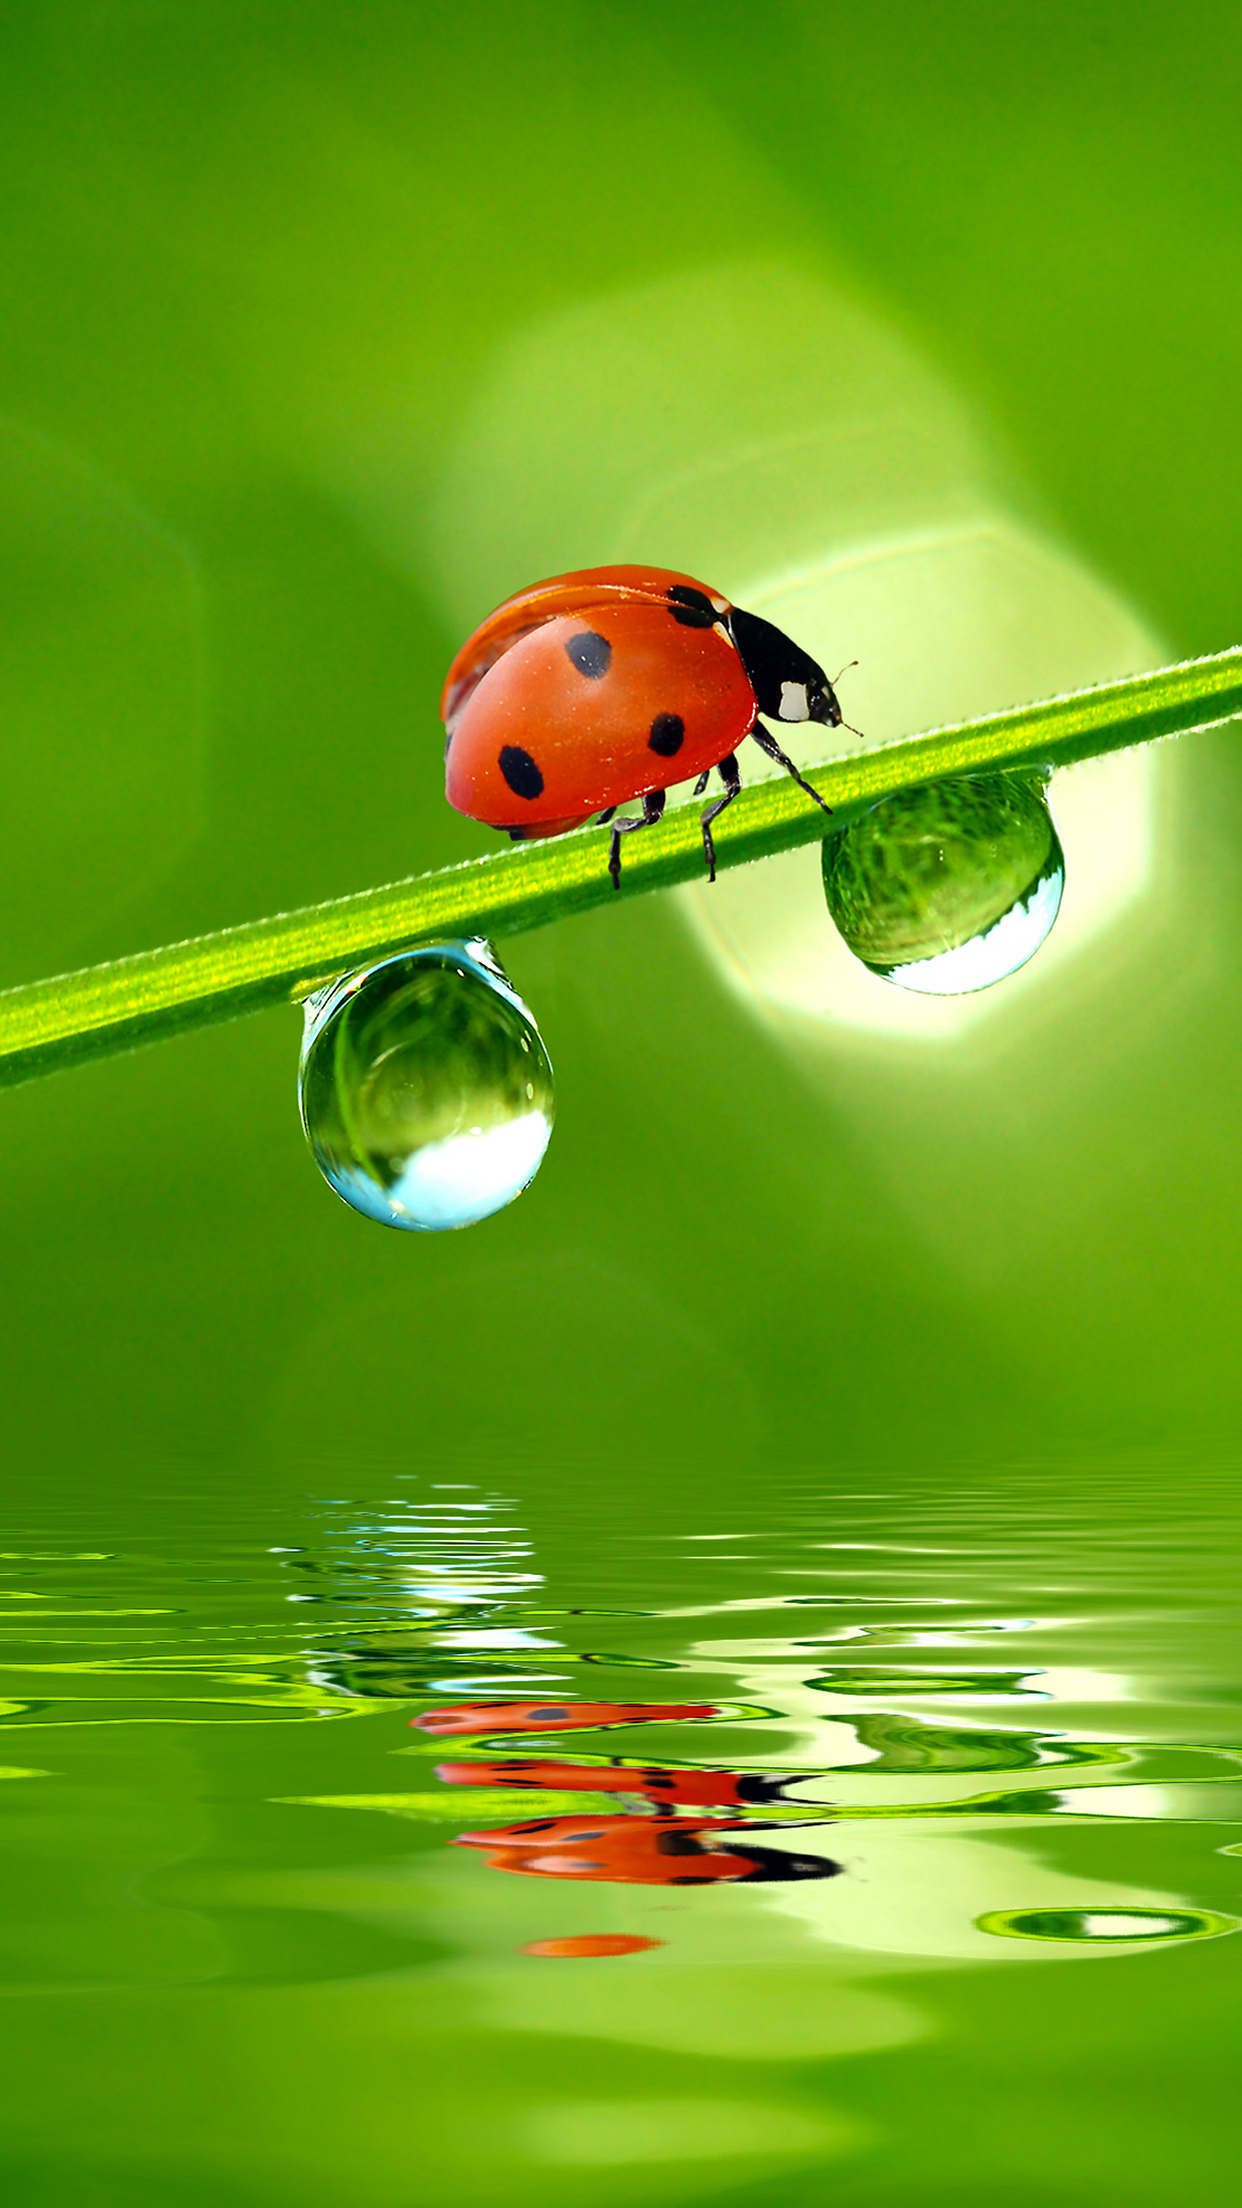 Ladybird water 3Wallpapers iPhone Parallax Ladybird water